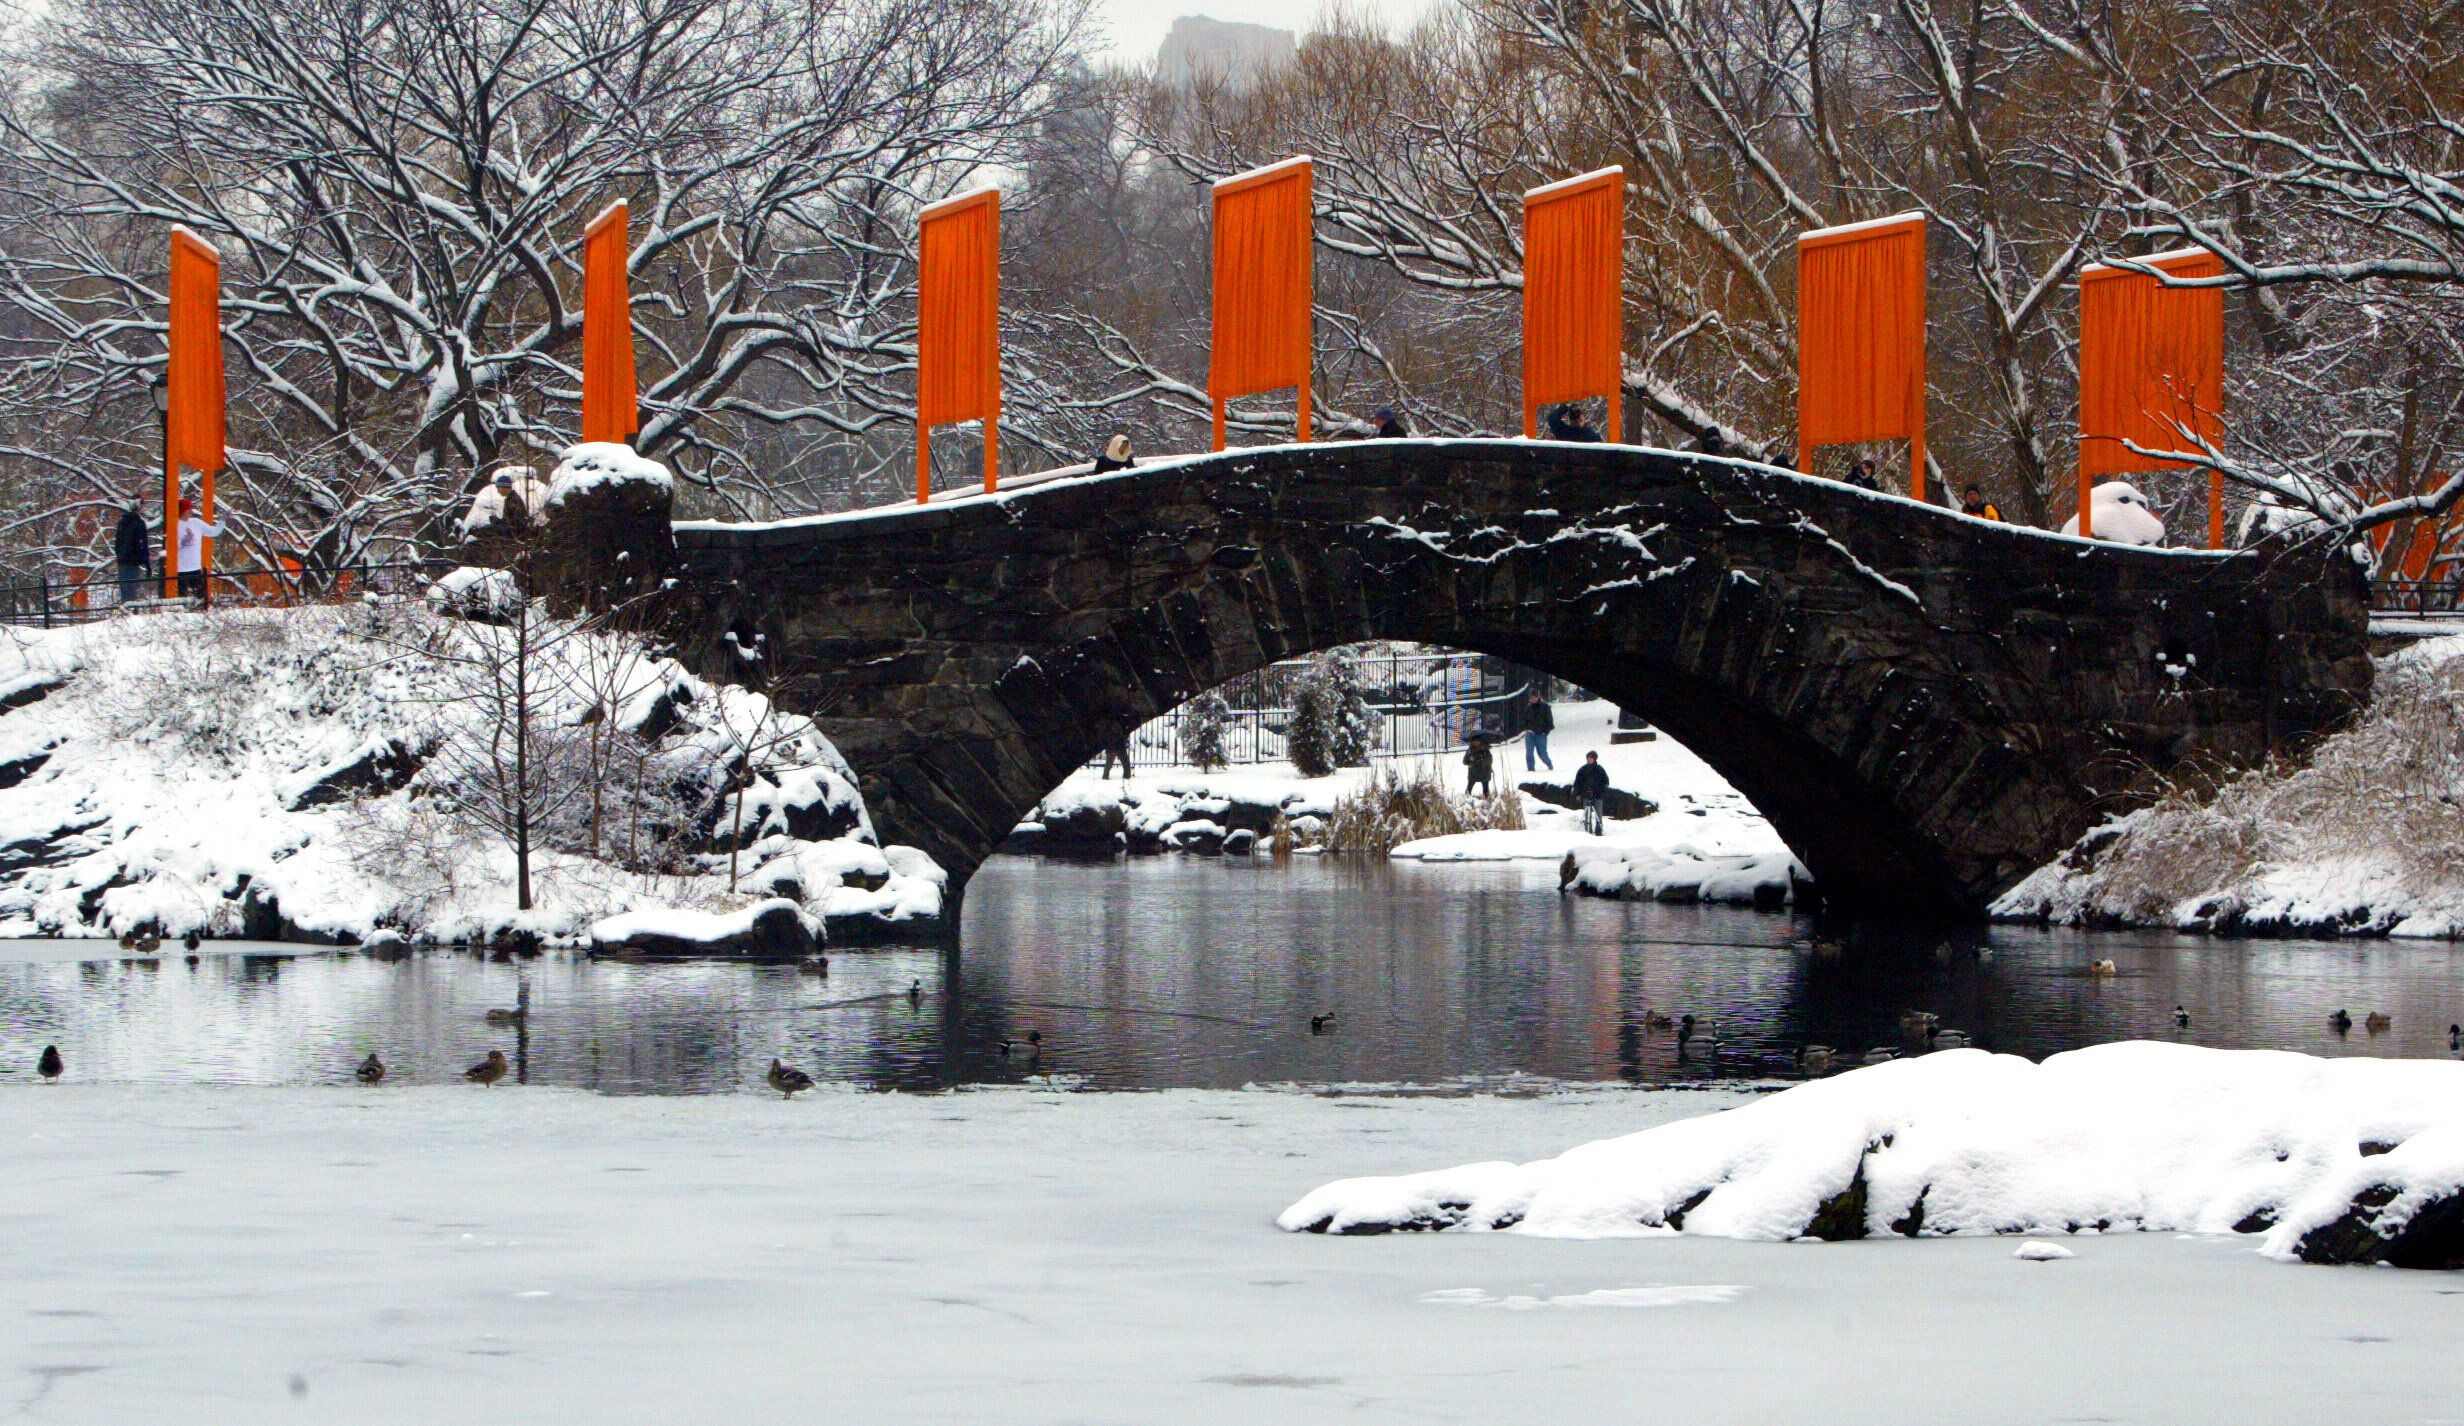 """The Gates"" art installation created by Christo and Jeanne-Claude lines a snow-covered bridge in New York's Central Park in 2"